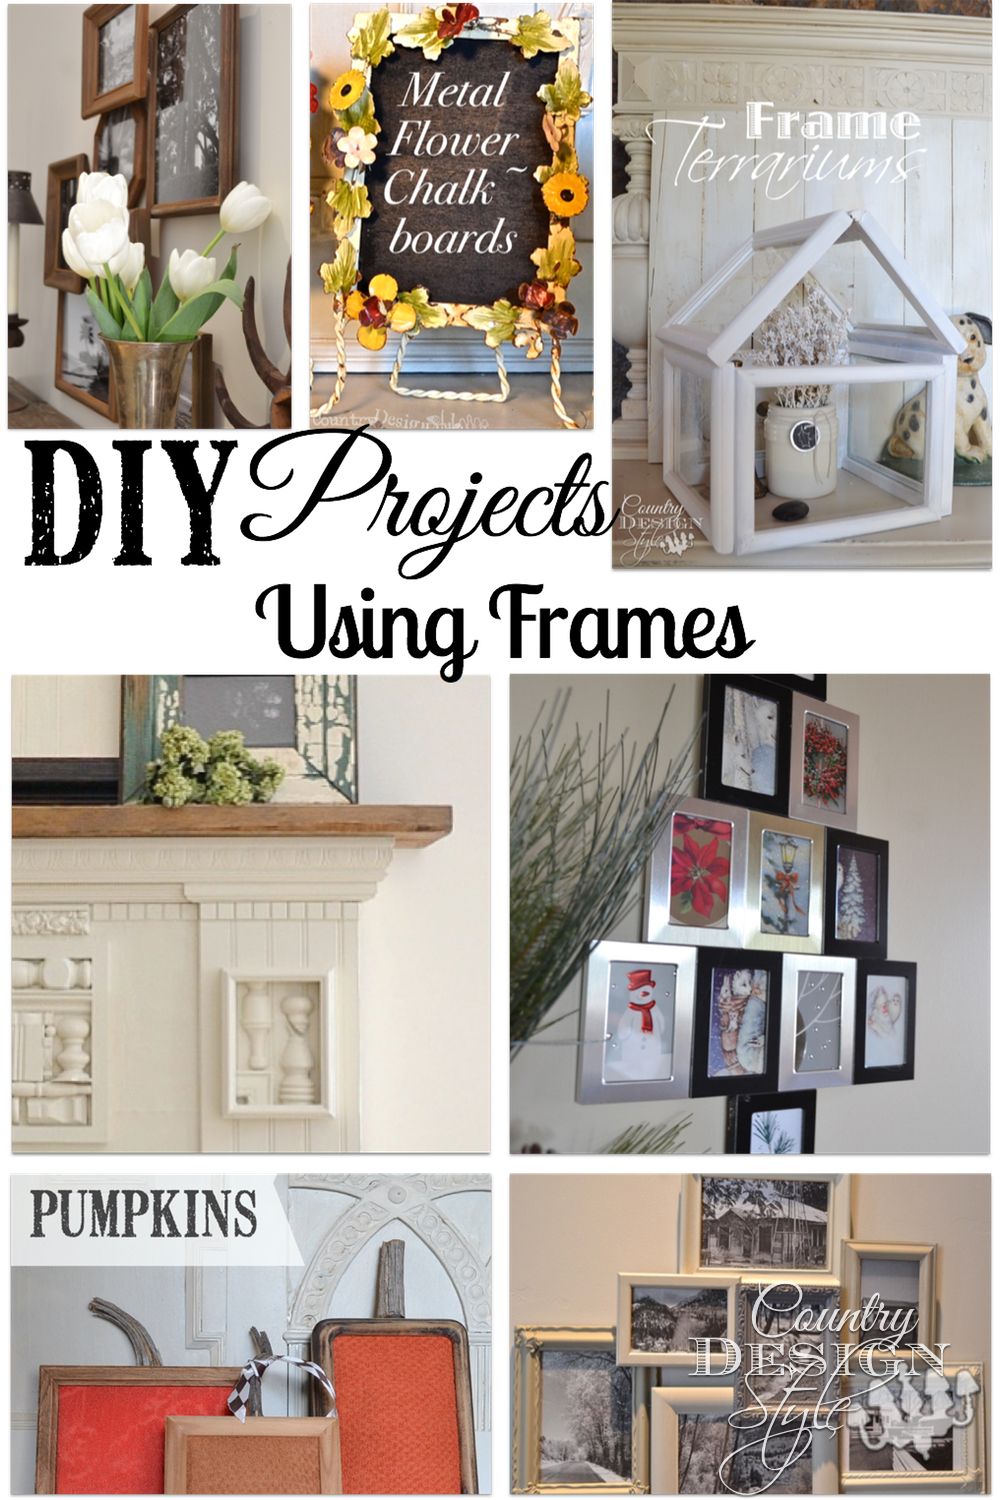 How To And Diy Projects Using Frames Most From The Thrift Country Design